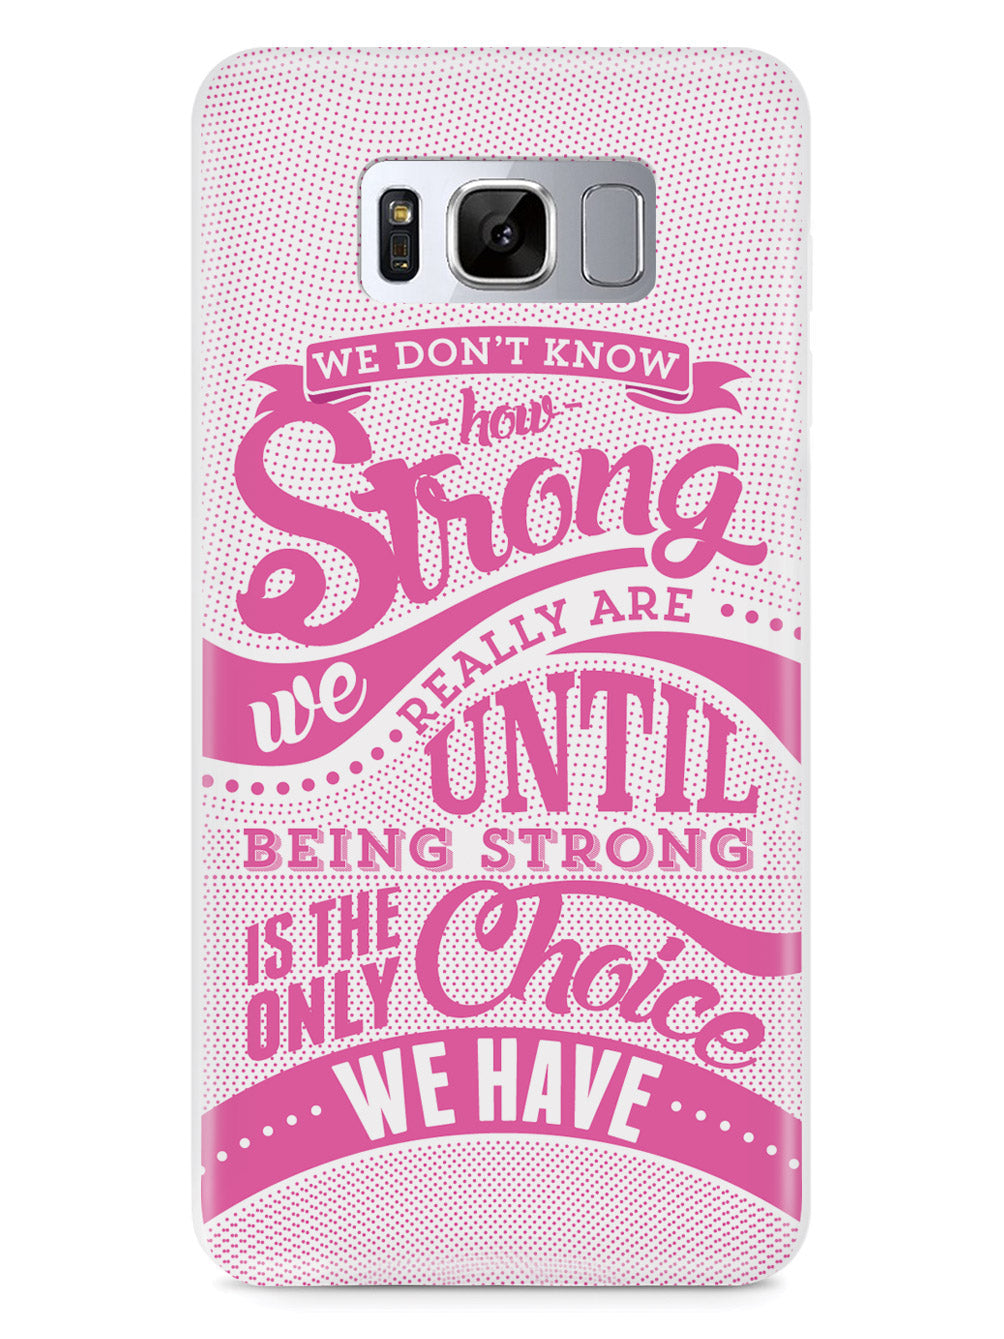 How Strong - Pink Awareness/Support Case